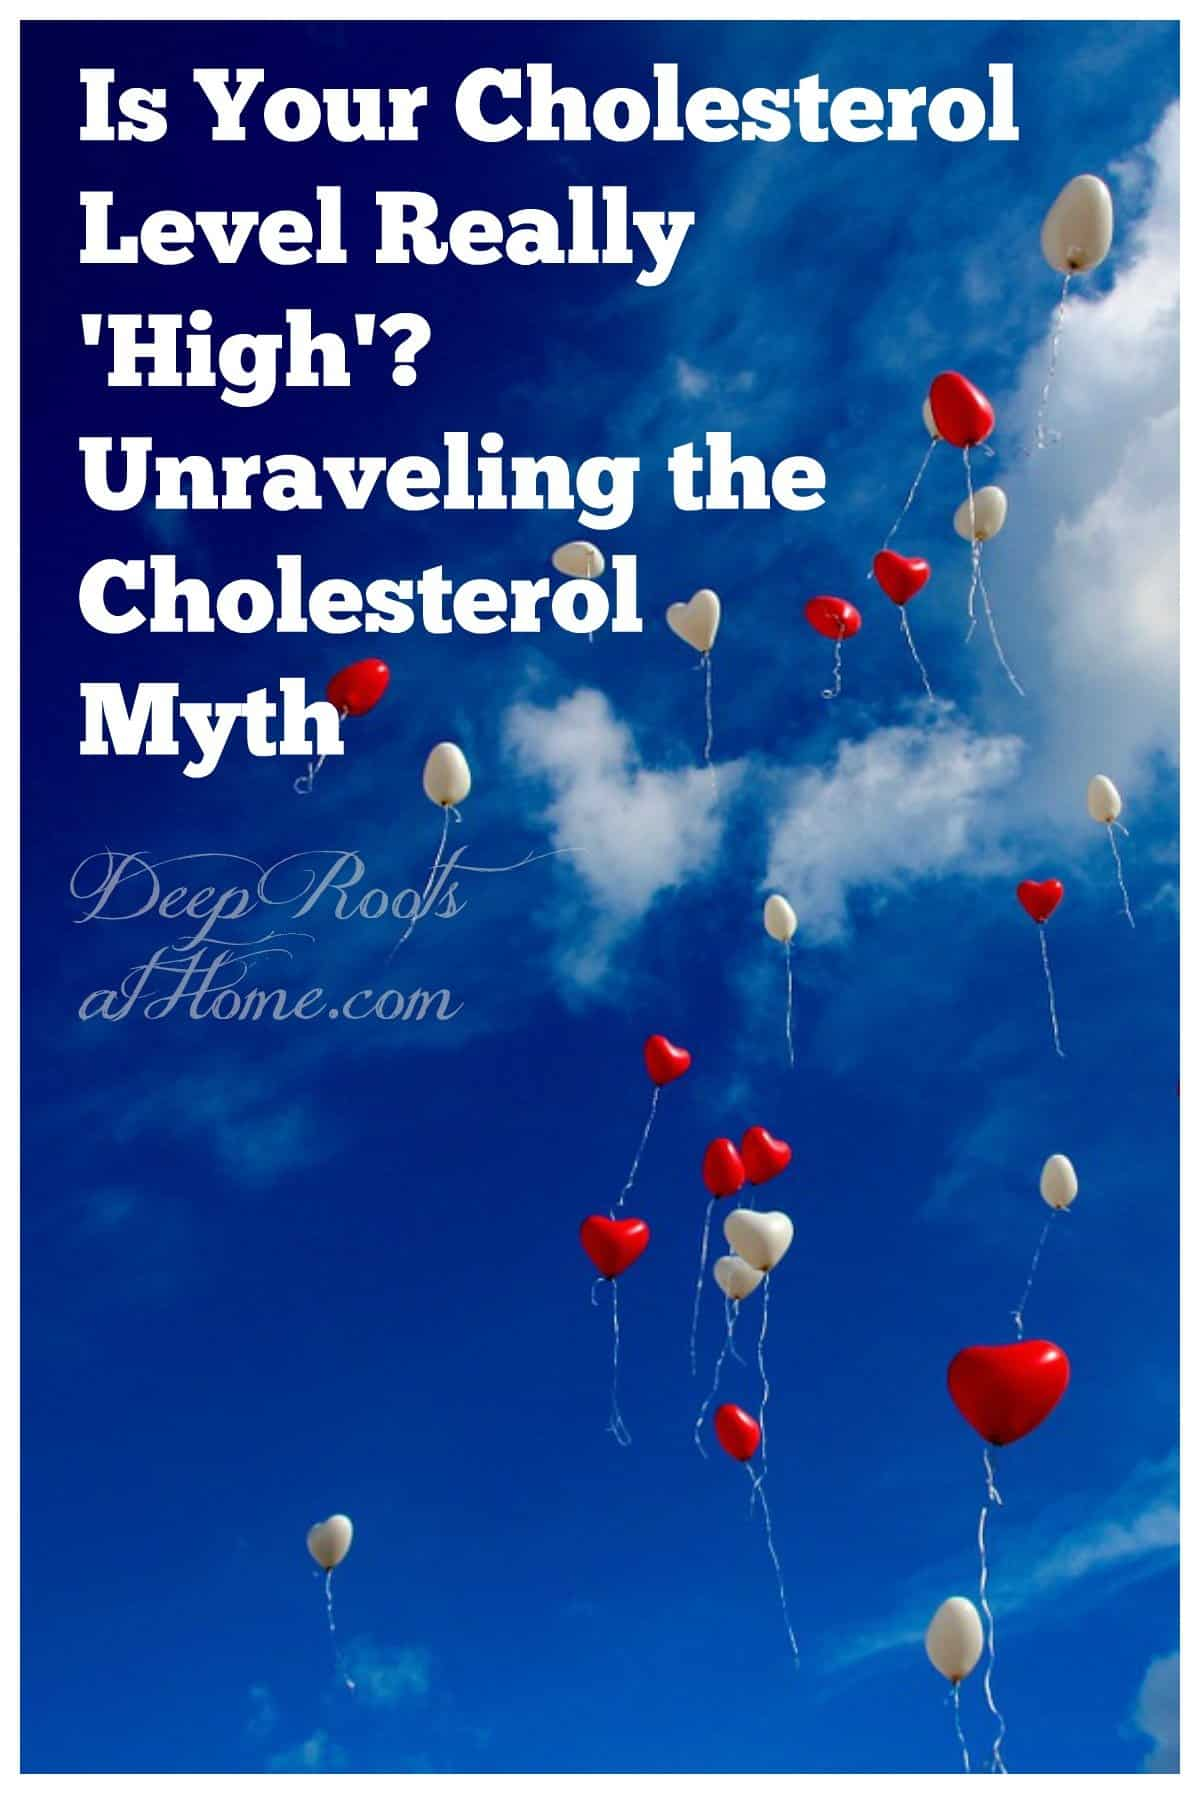 Is Your Cholesterol Level Really 'High'? Unravelling the Cholesterol Myth. Balloons floating up to the sky